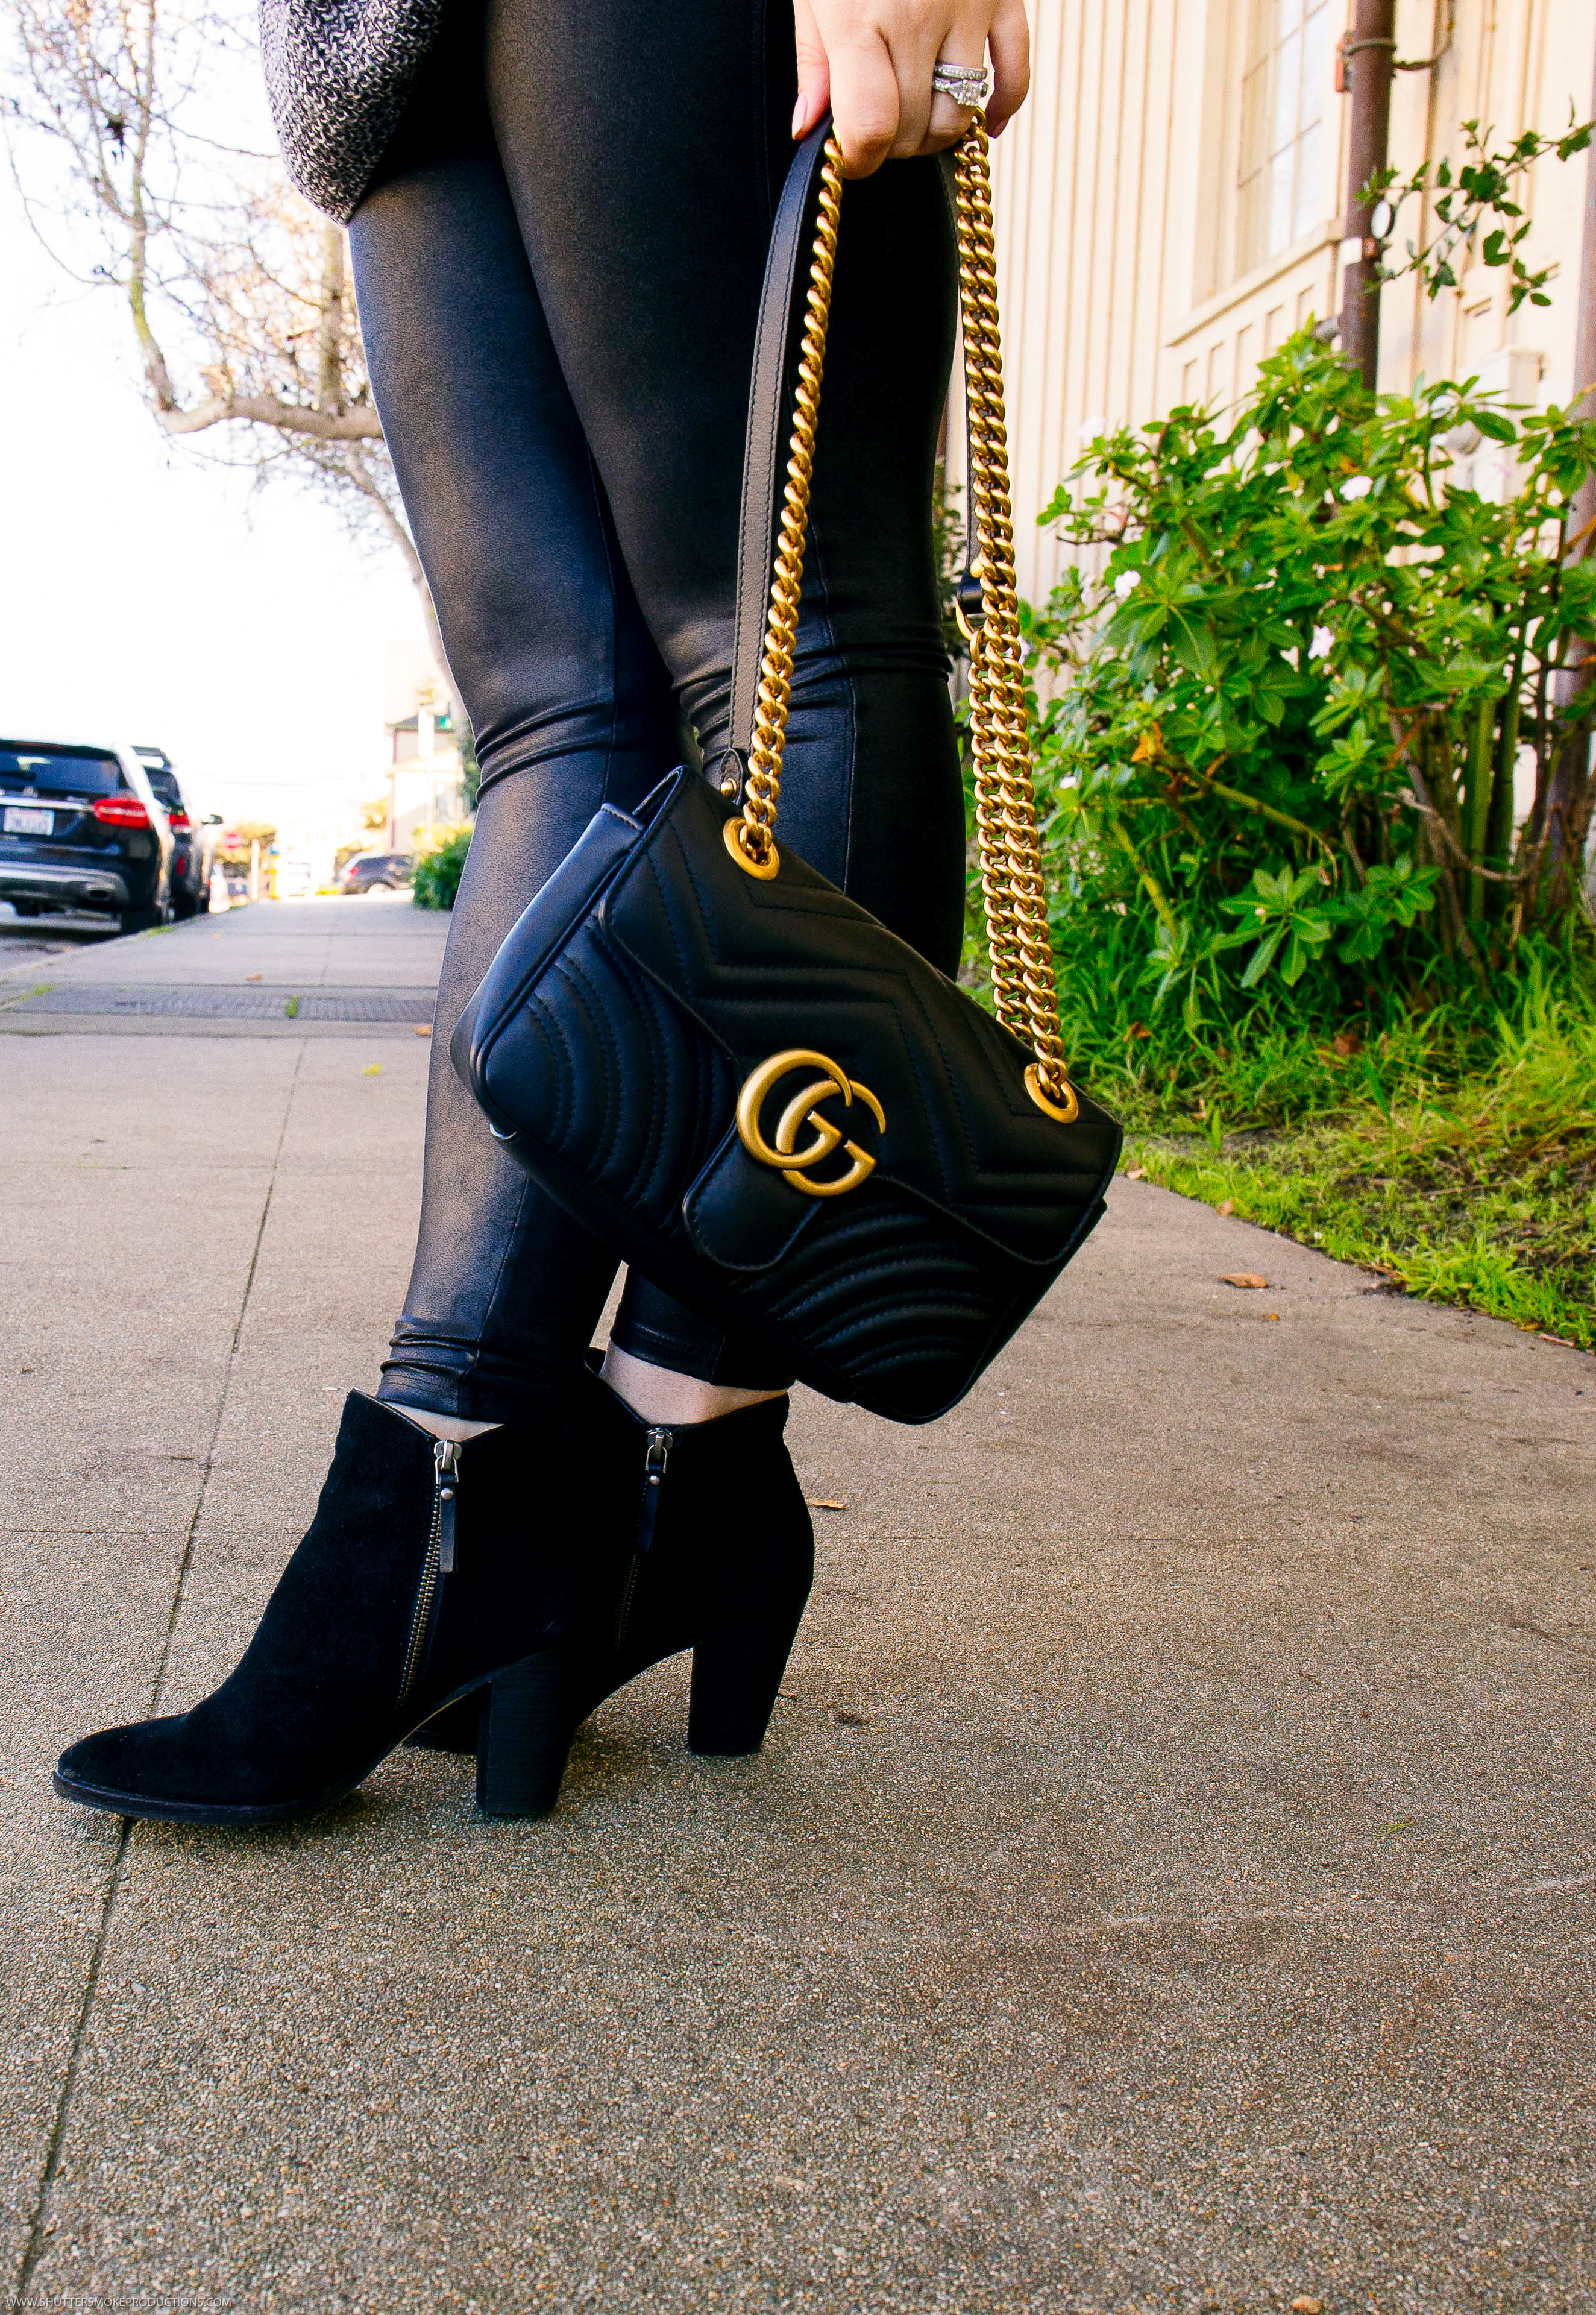 Gucci Marmont mini bag style by popular California fashion blogger, Haute Beauty Guide